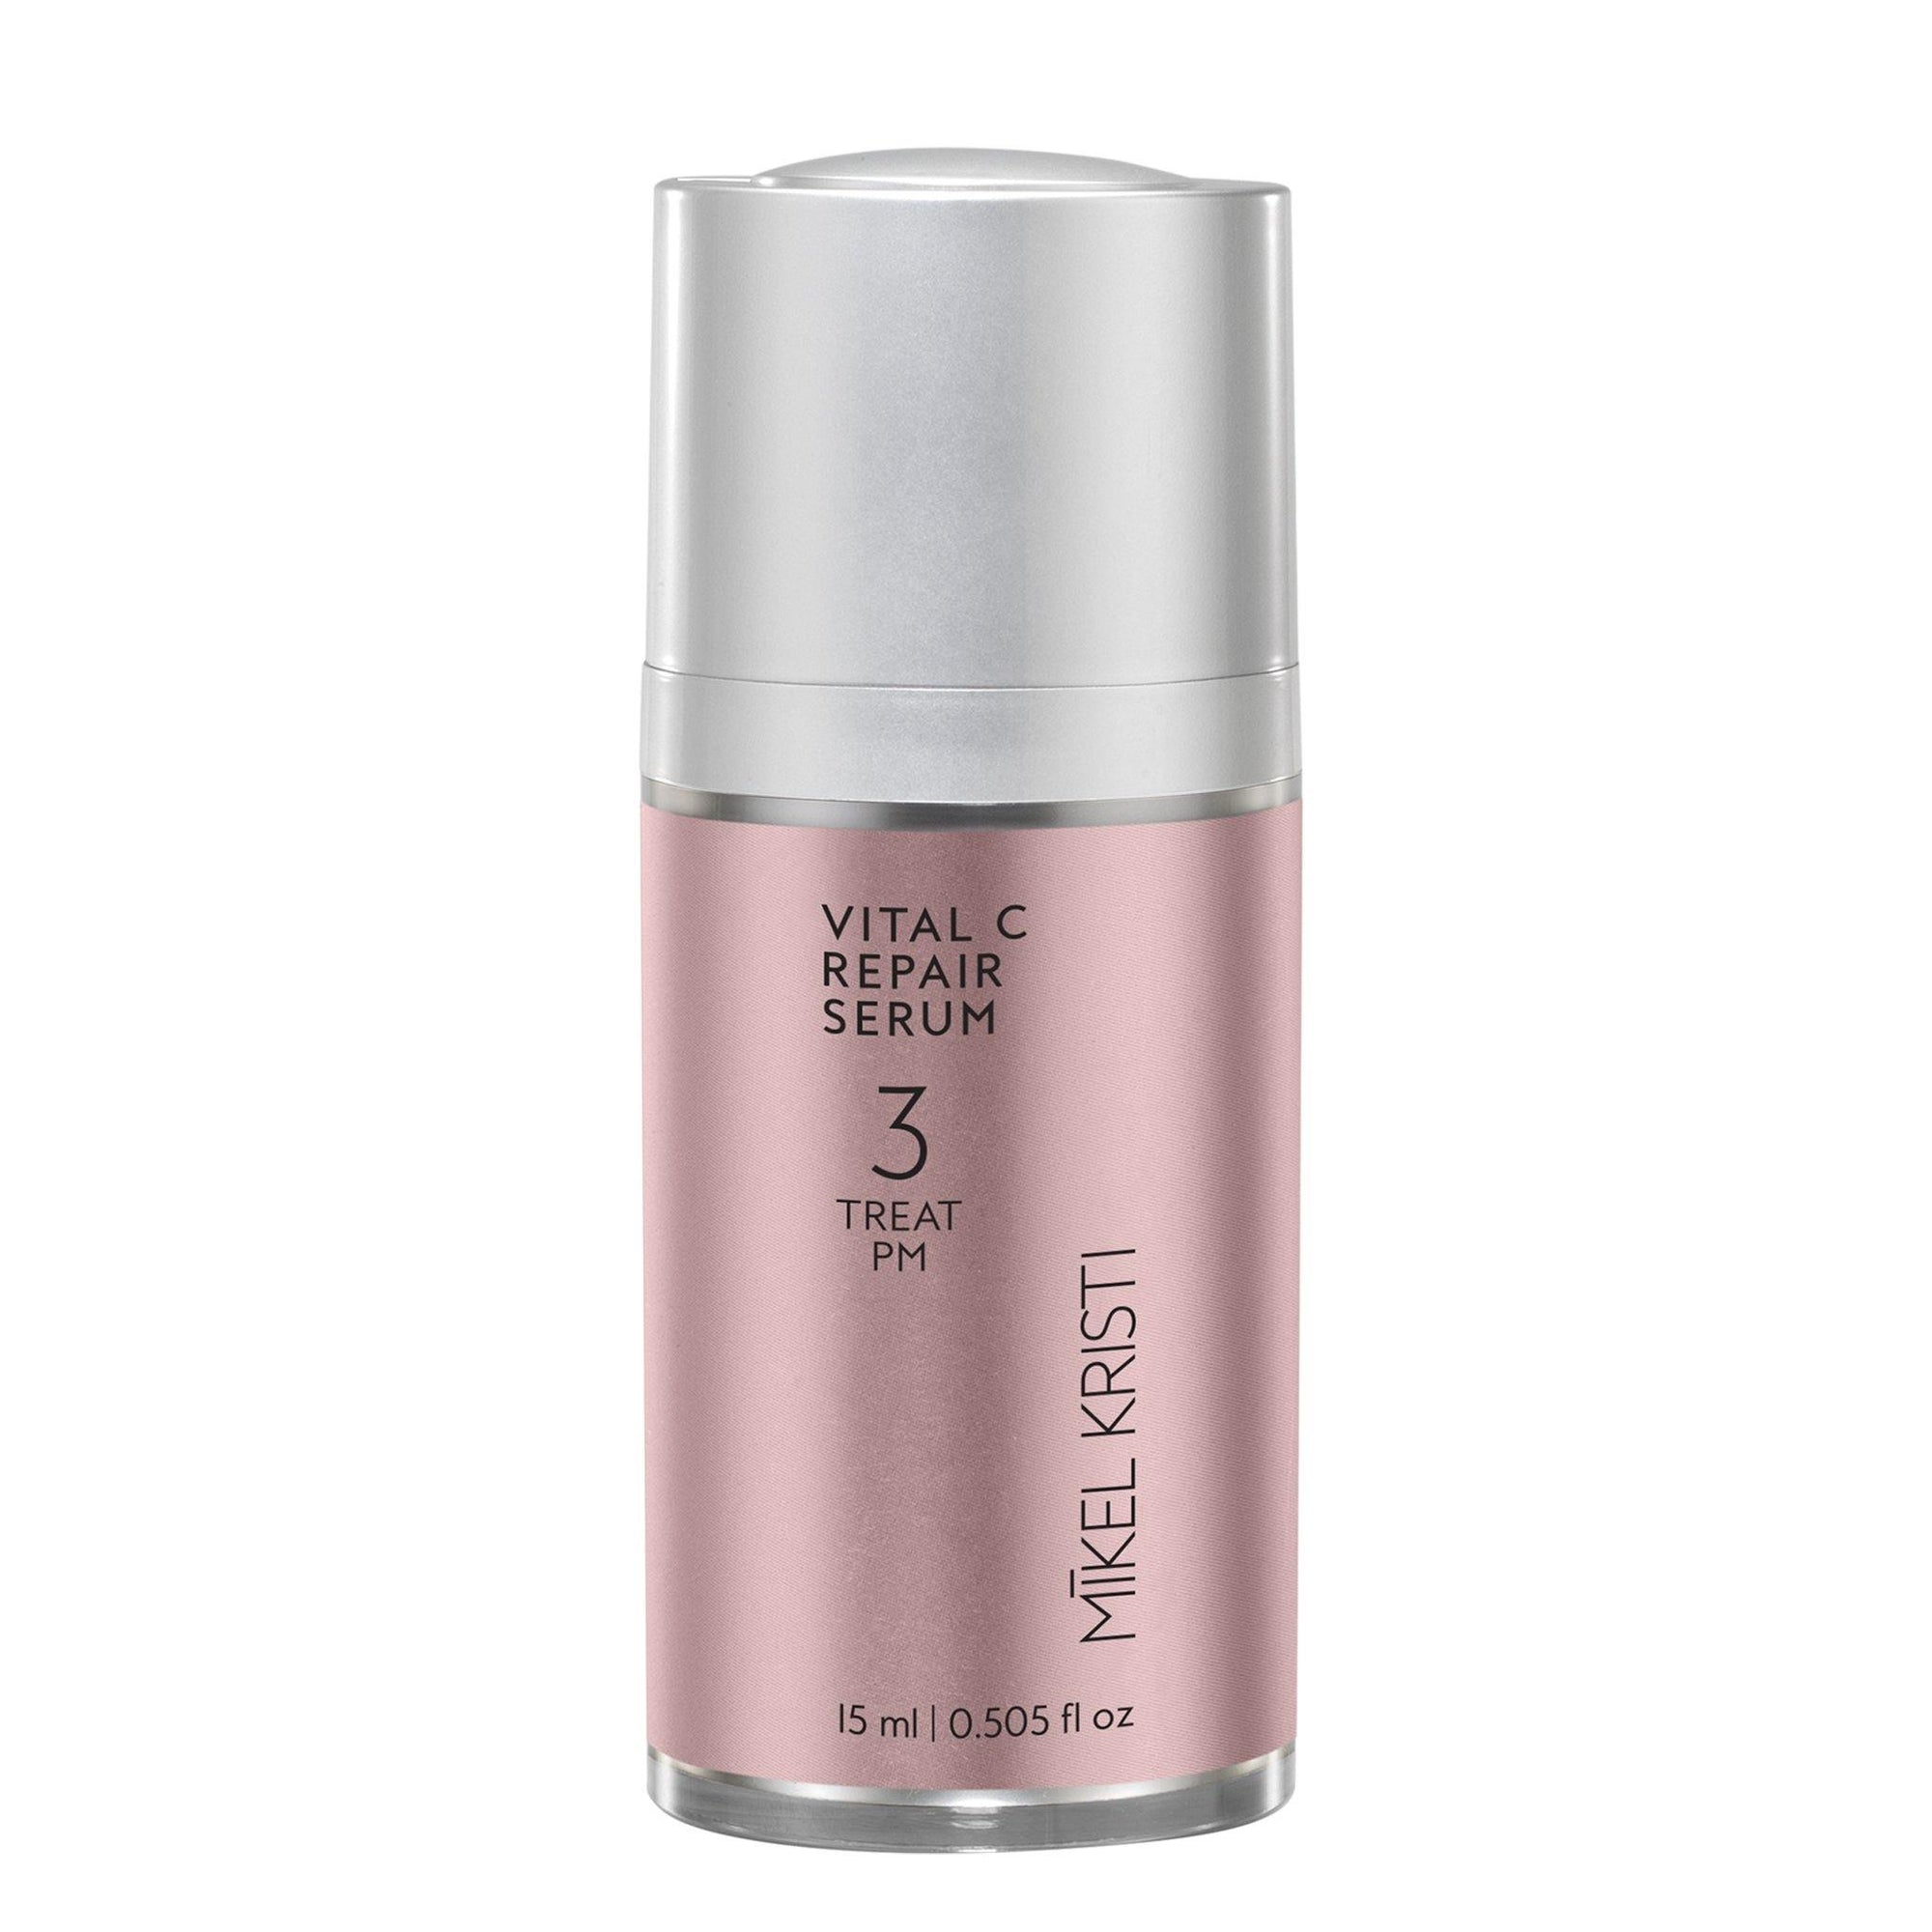 15ml airless pump bottle with pink metallic label black text, step 3 - Treat in the Mikel Kristi Skincare daily regimen